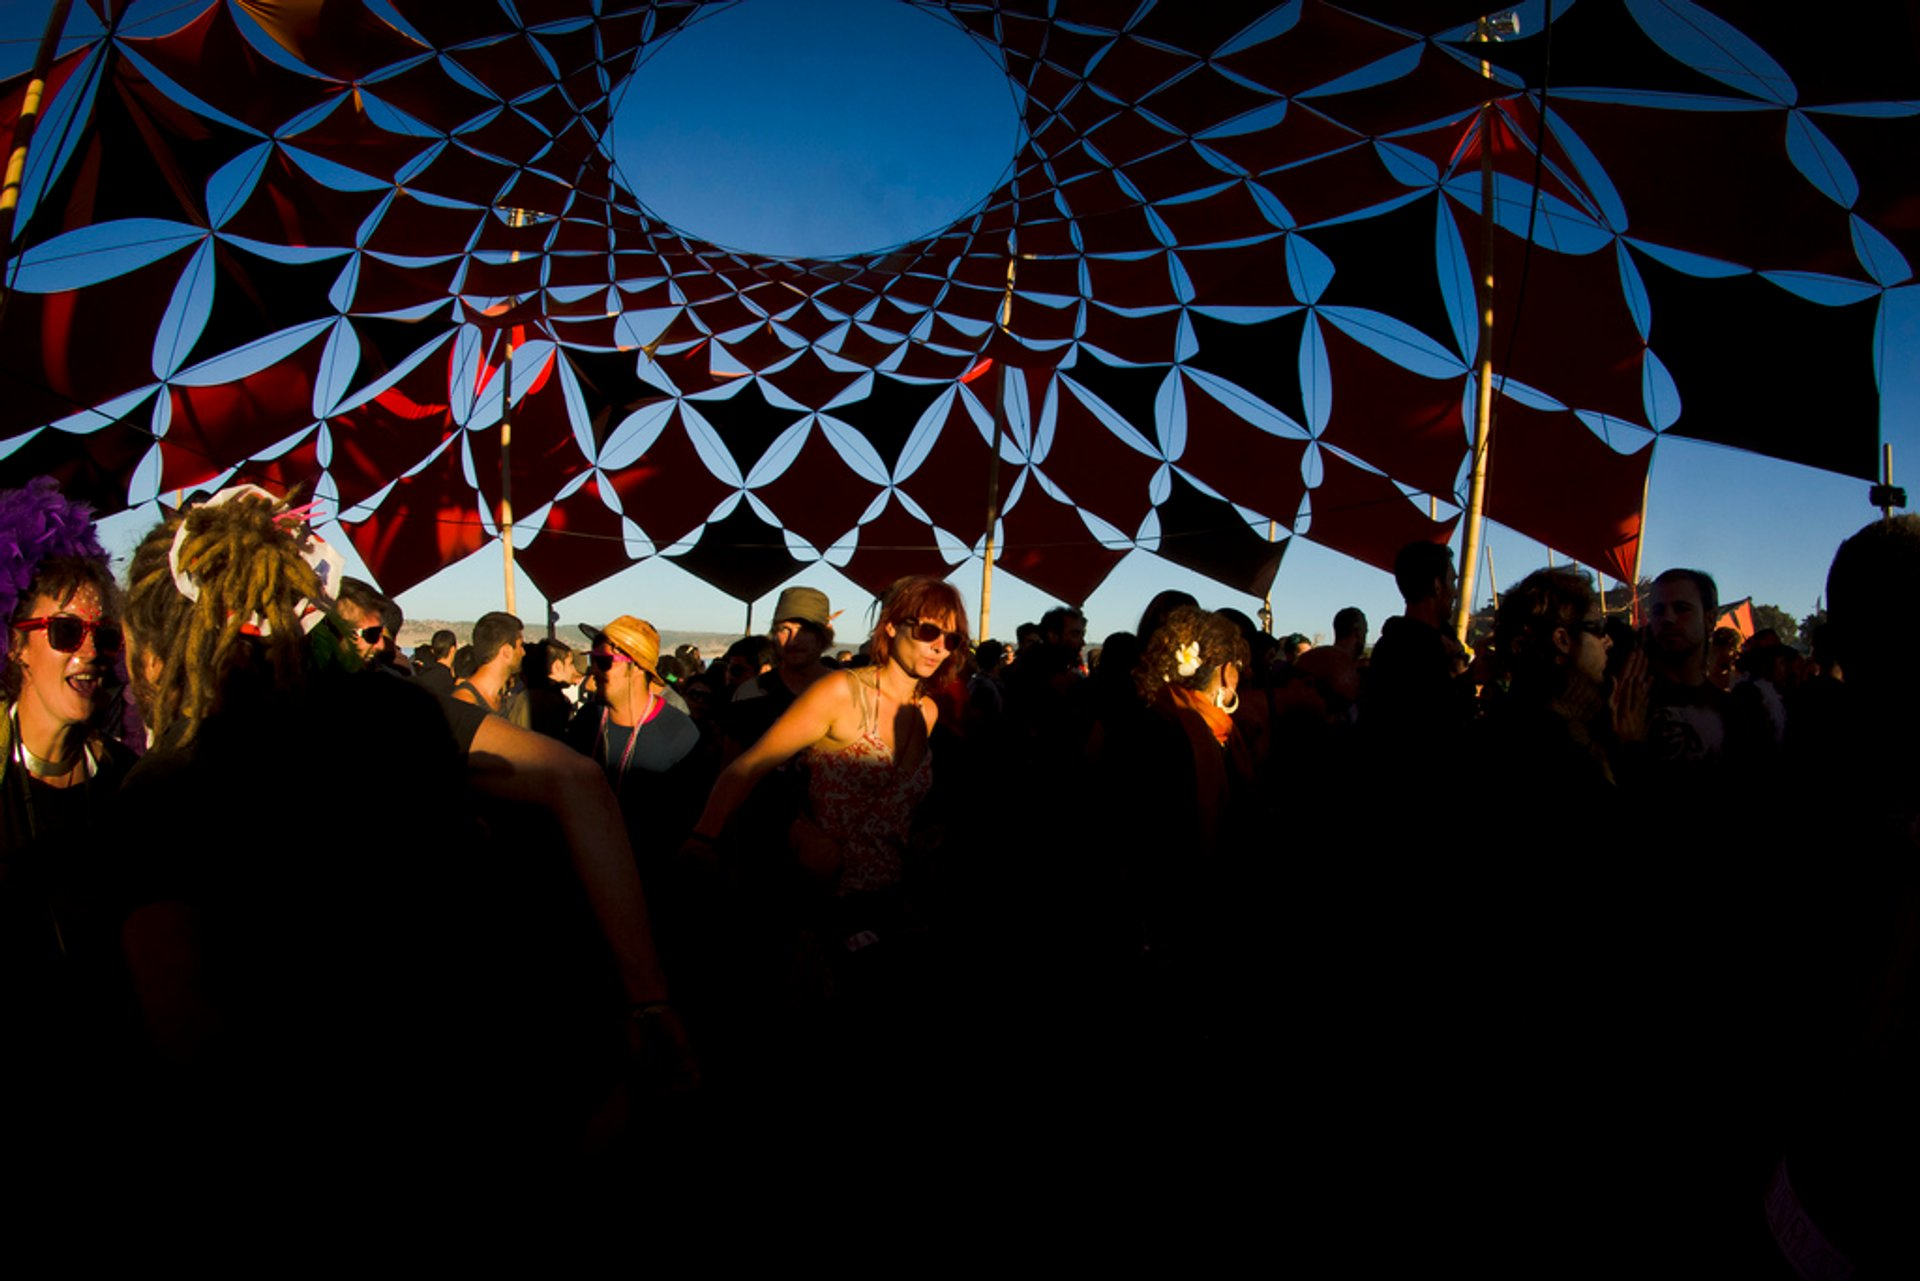 Best time to see Boom Festival in Portugal 2020